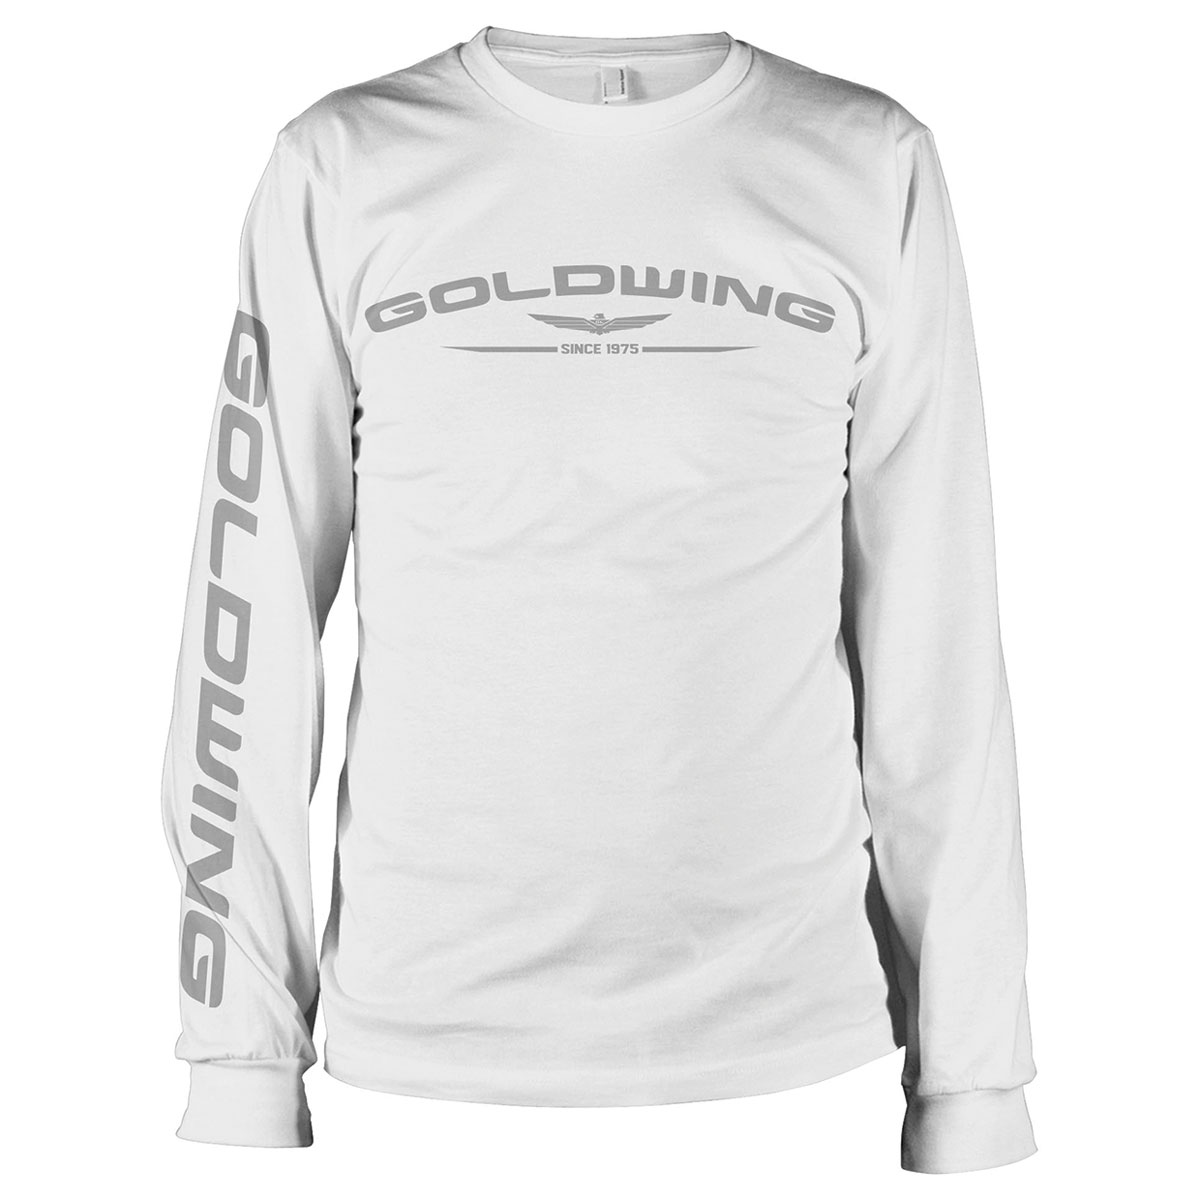 Honda Men's Gold Wing White Long-Sleeve T-shirt